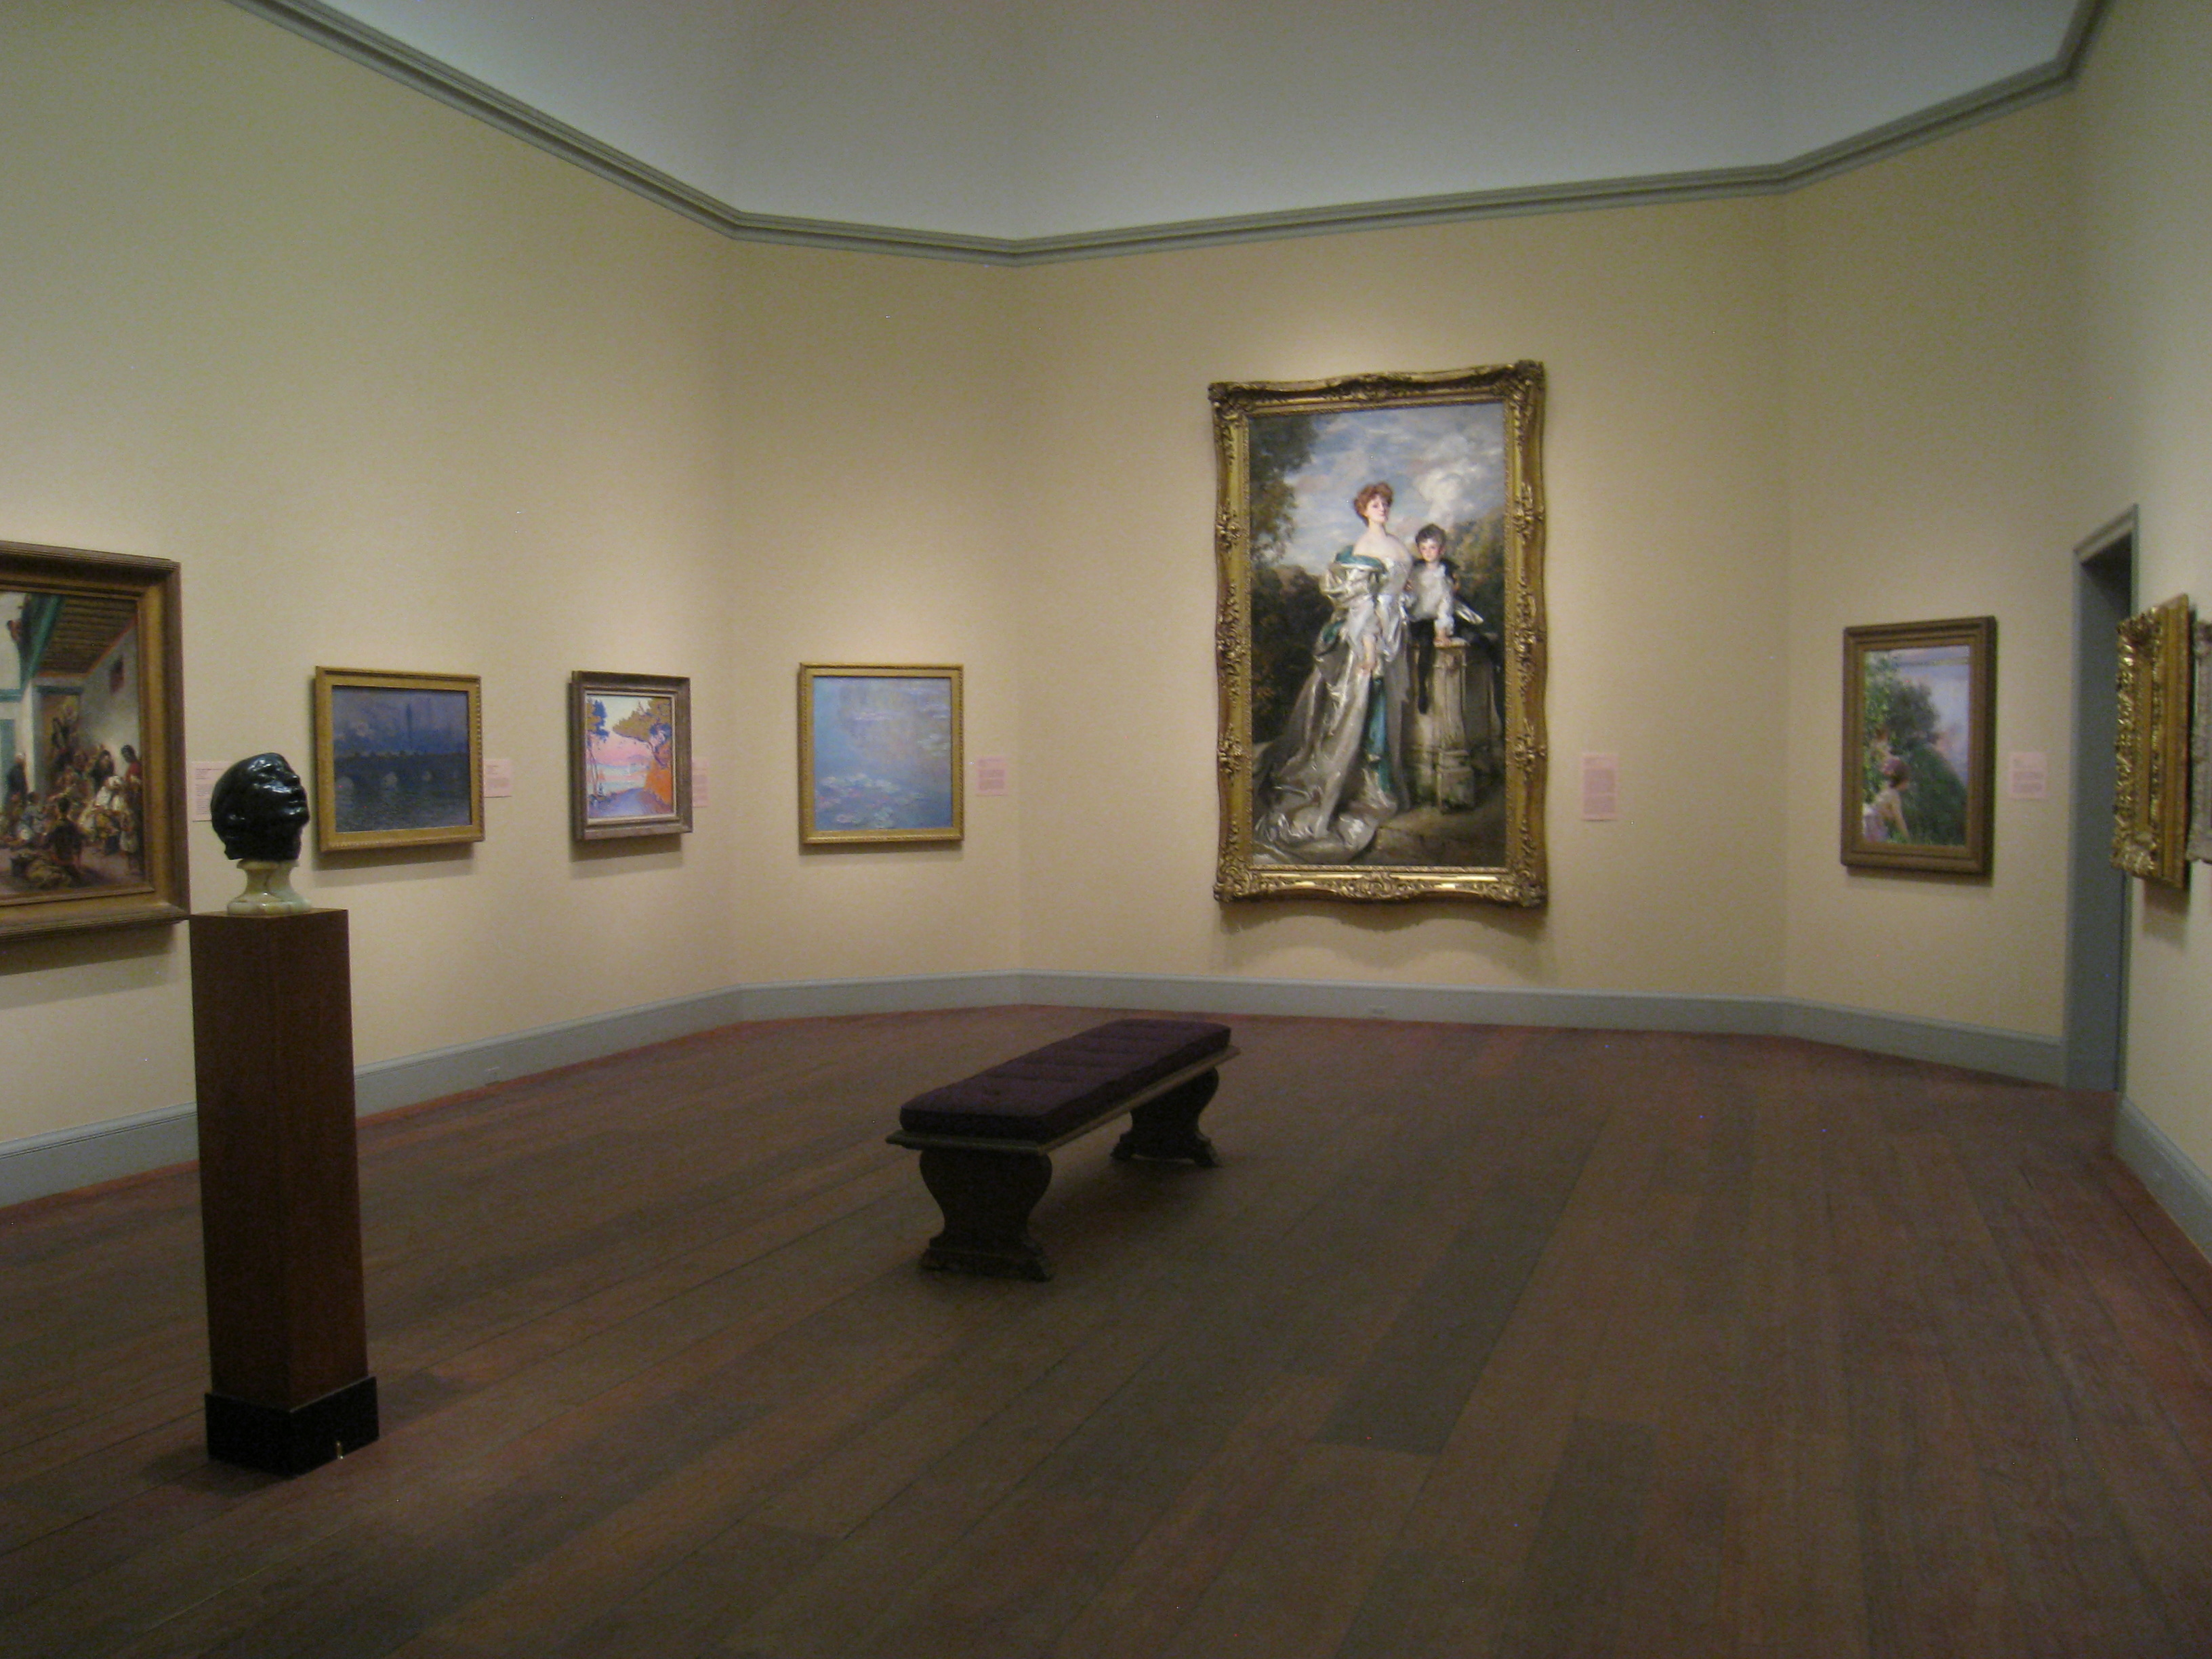 File:Interior view, Worcester Art Museum - IMG 7223.JPG ...